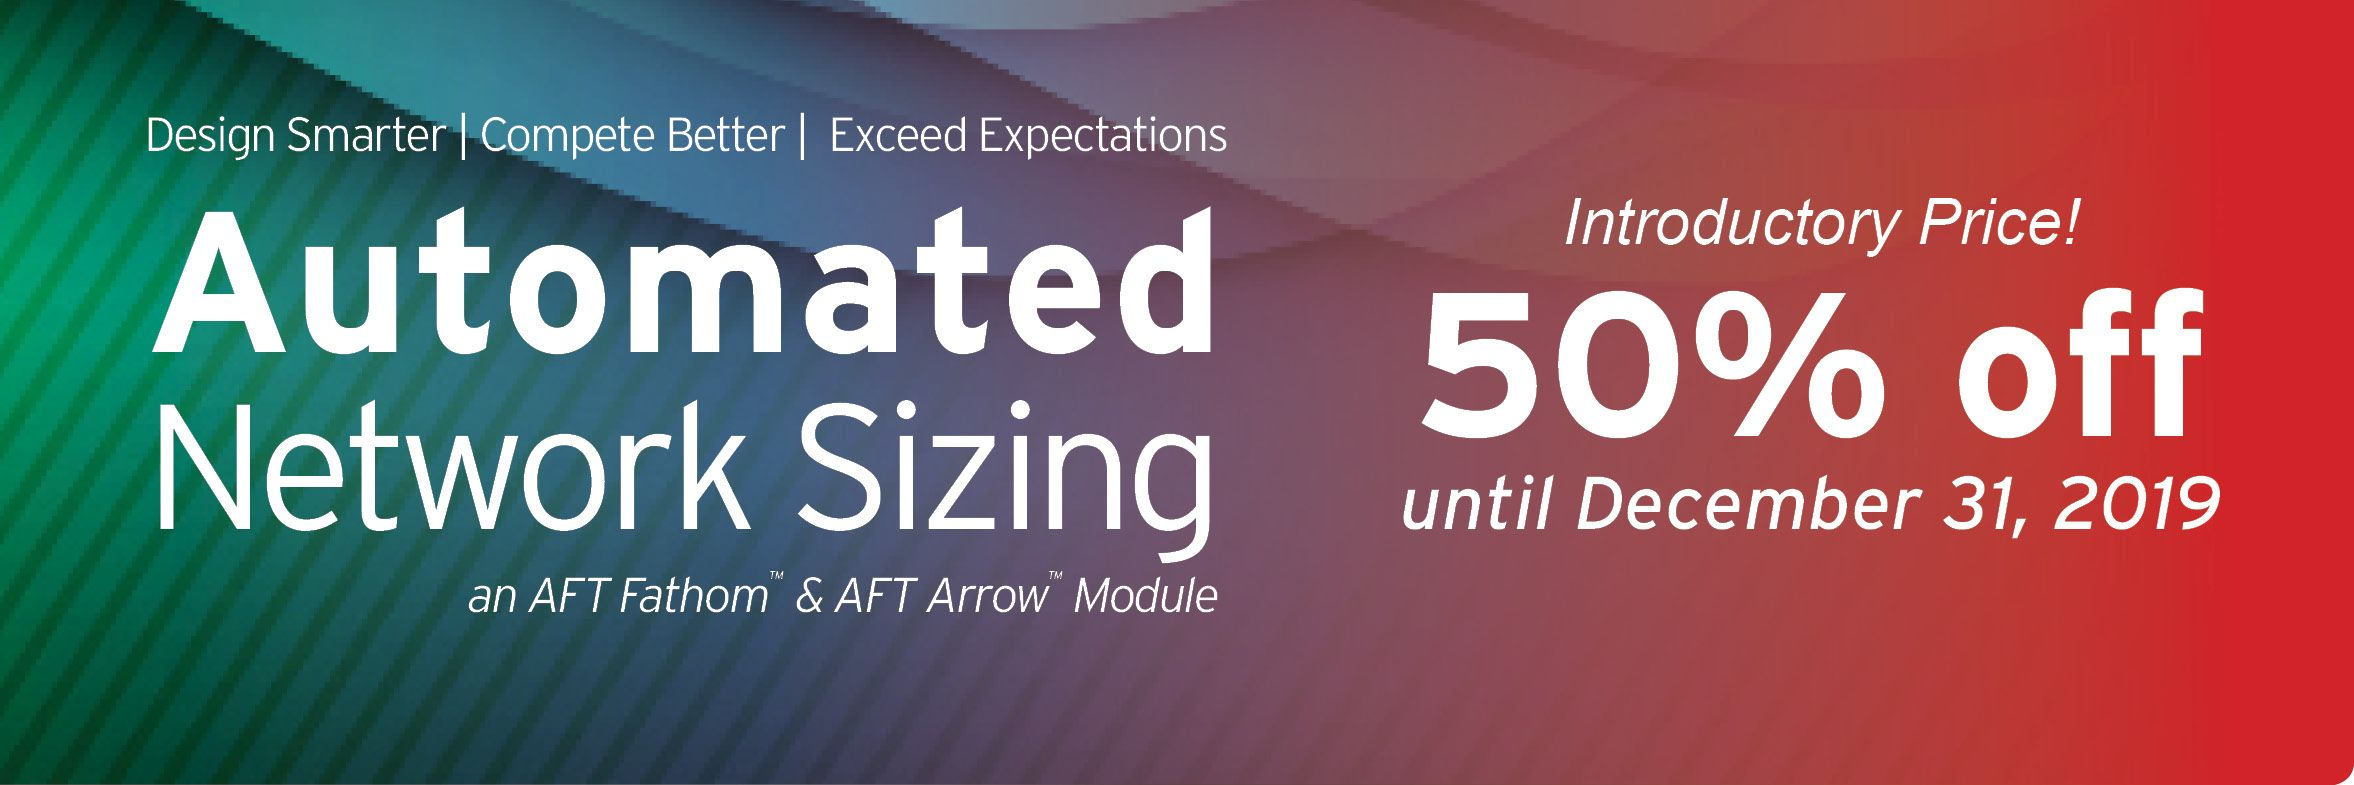 Automated Network Sizing Website Banner